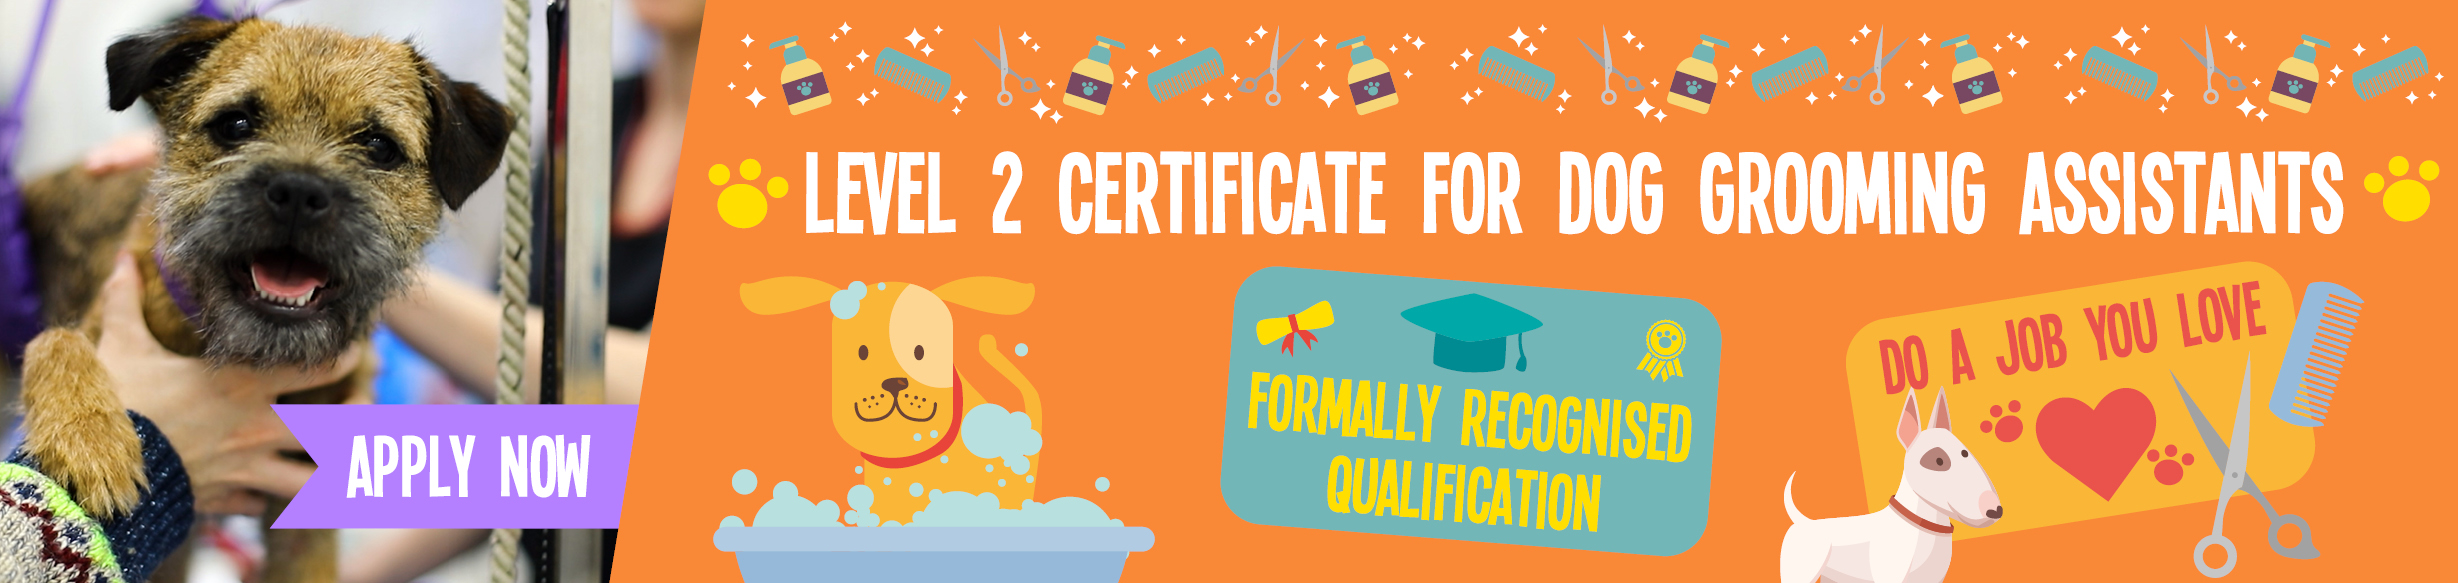 Course: Level 2 Certificate for Dog Grooming Assistants